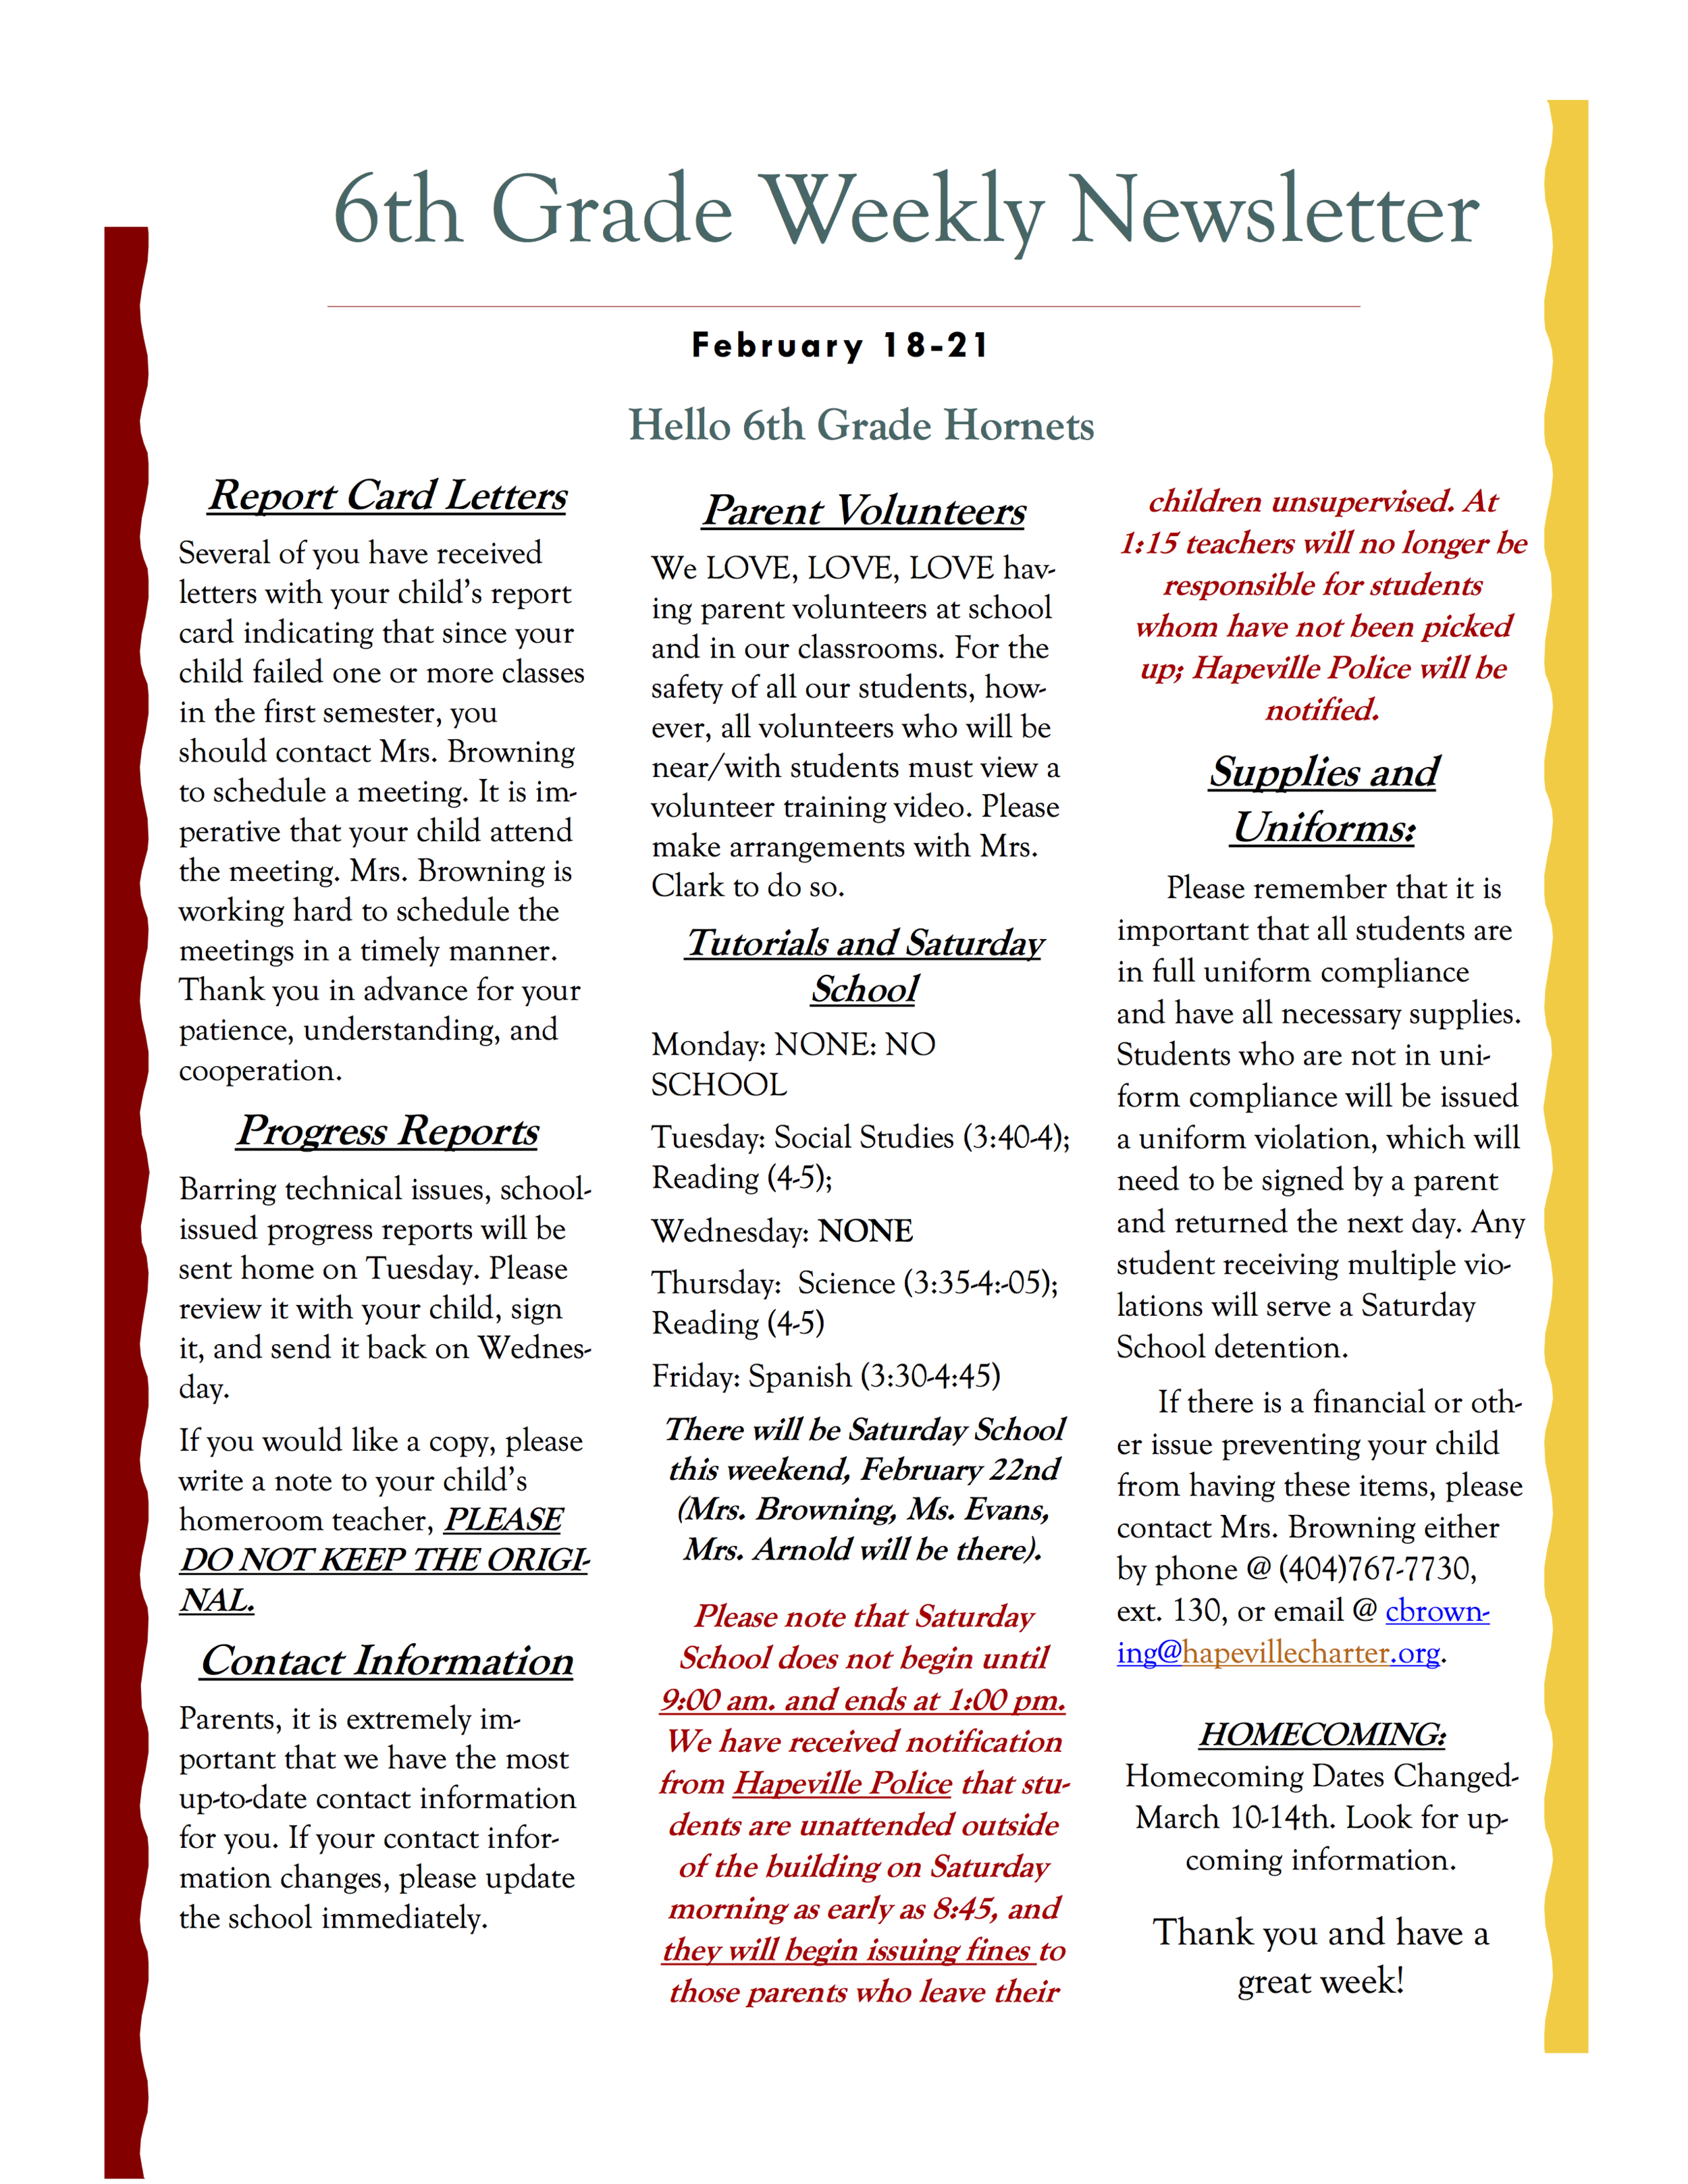 6th grafde February 18-21A.png